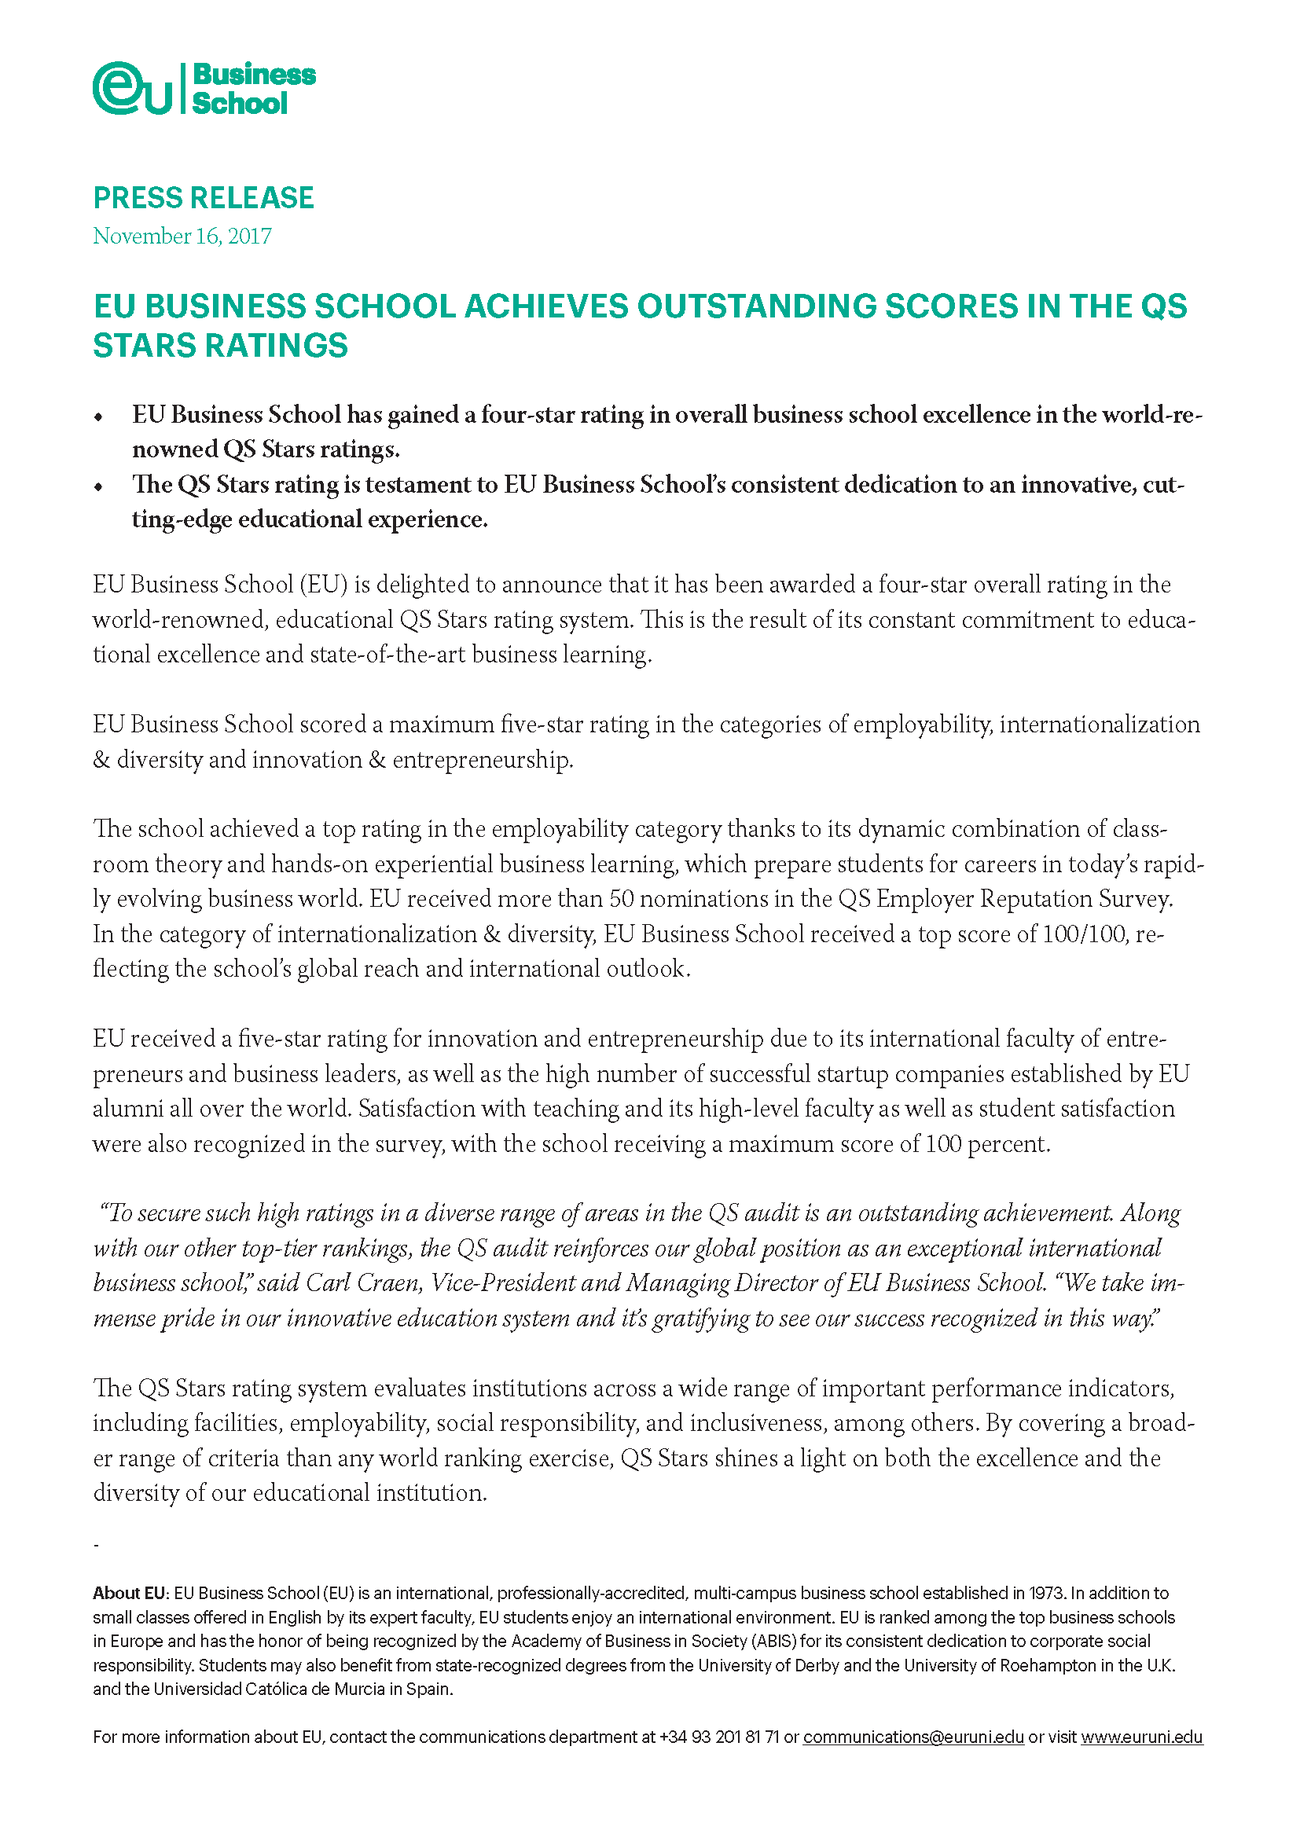 EU BUSINESS SCHOOL ACHIEVES OUTSTANDING SCORES IN THE QS STARS RATINGS